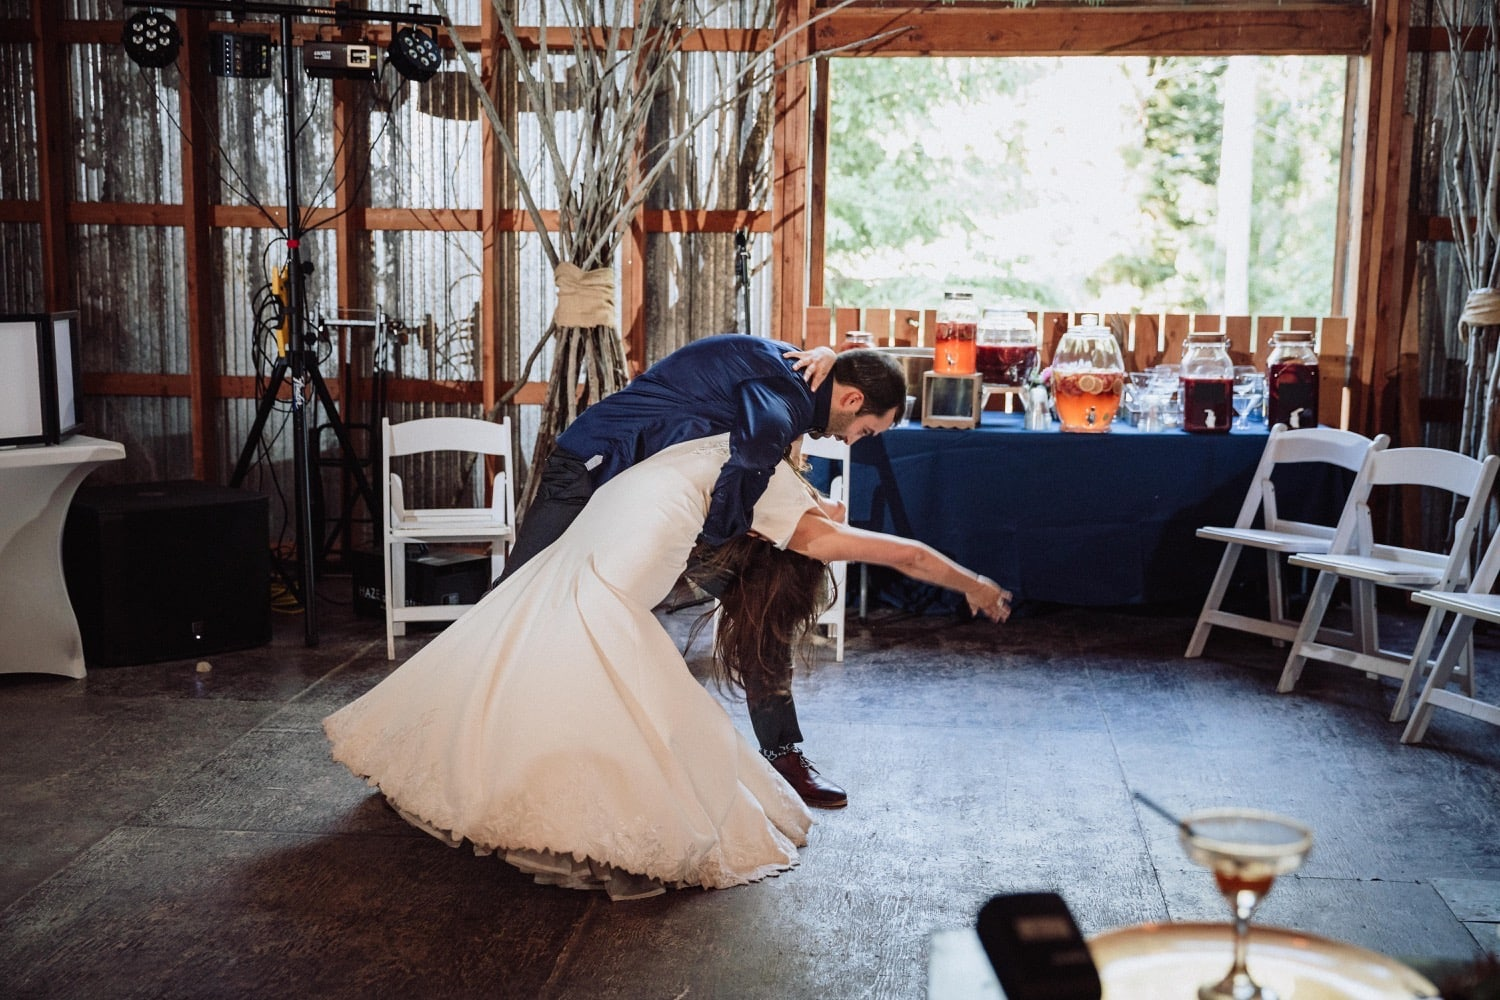 Groom dips his bride at the end of their surprise first dance at their wedding